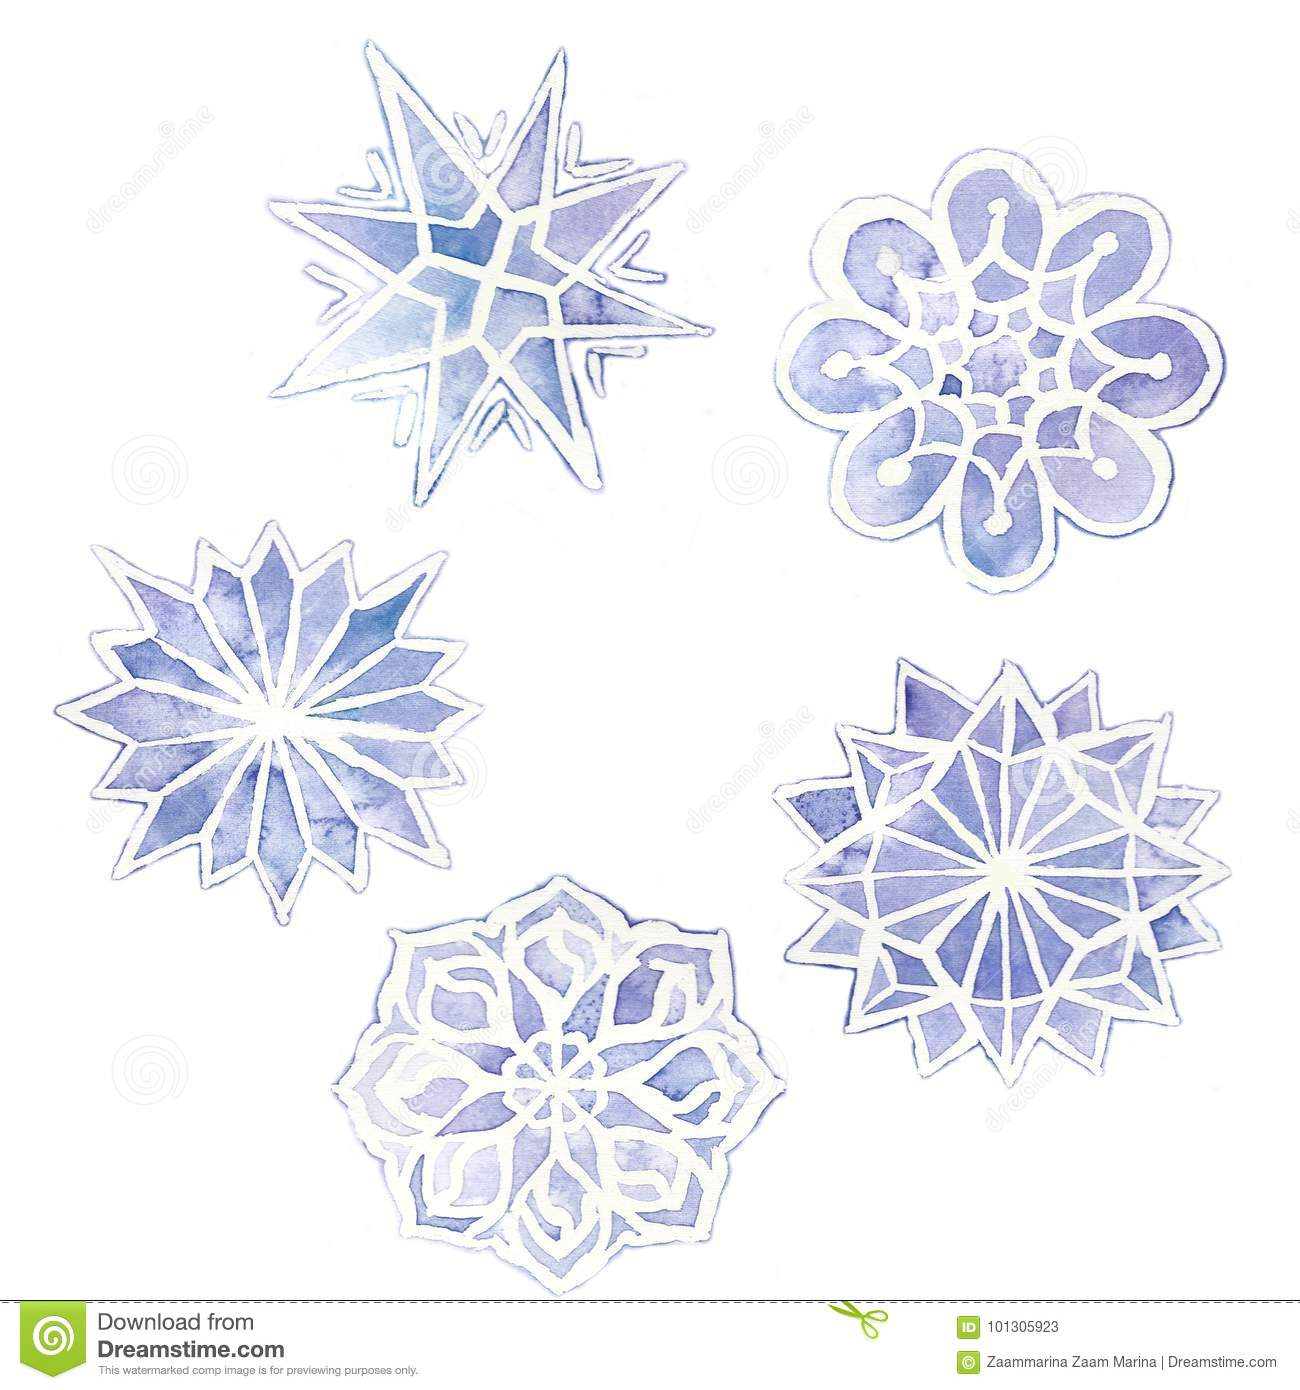 watercolor drawing of snowflakes, set of 6 snowflakes, purple on a white